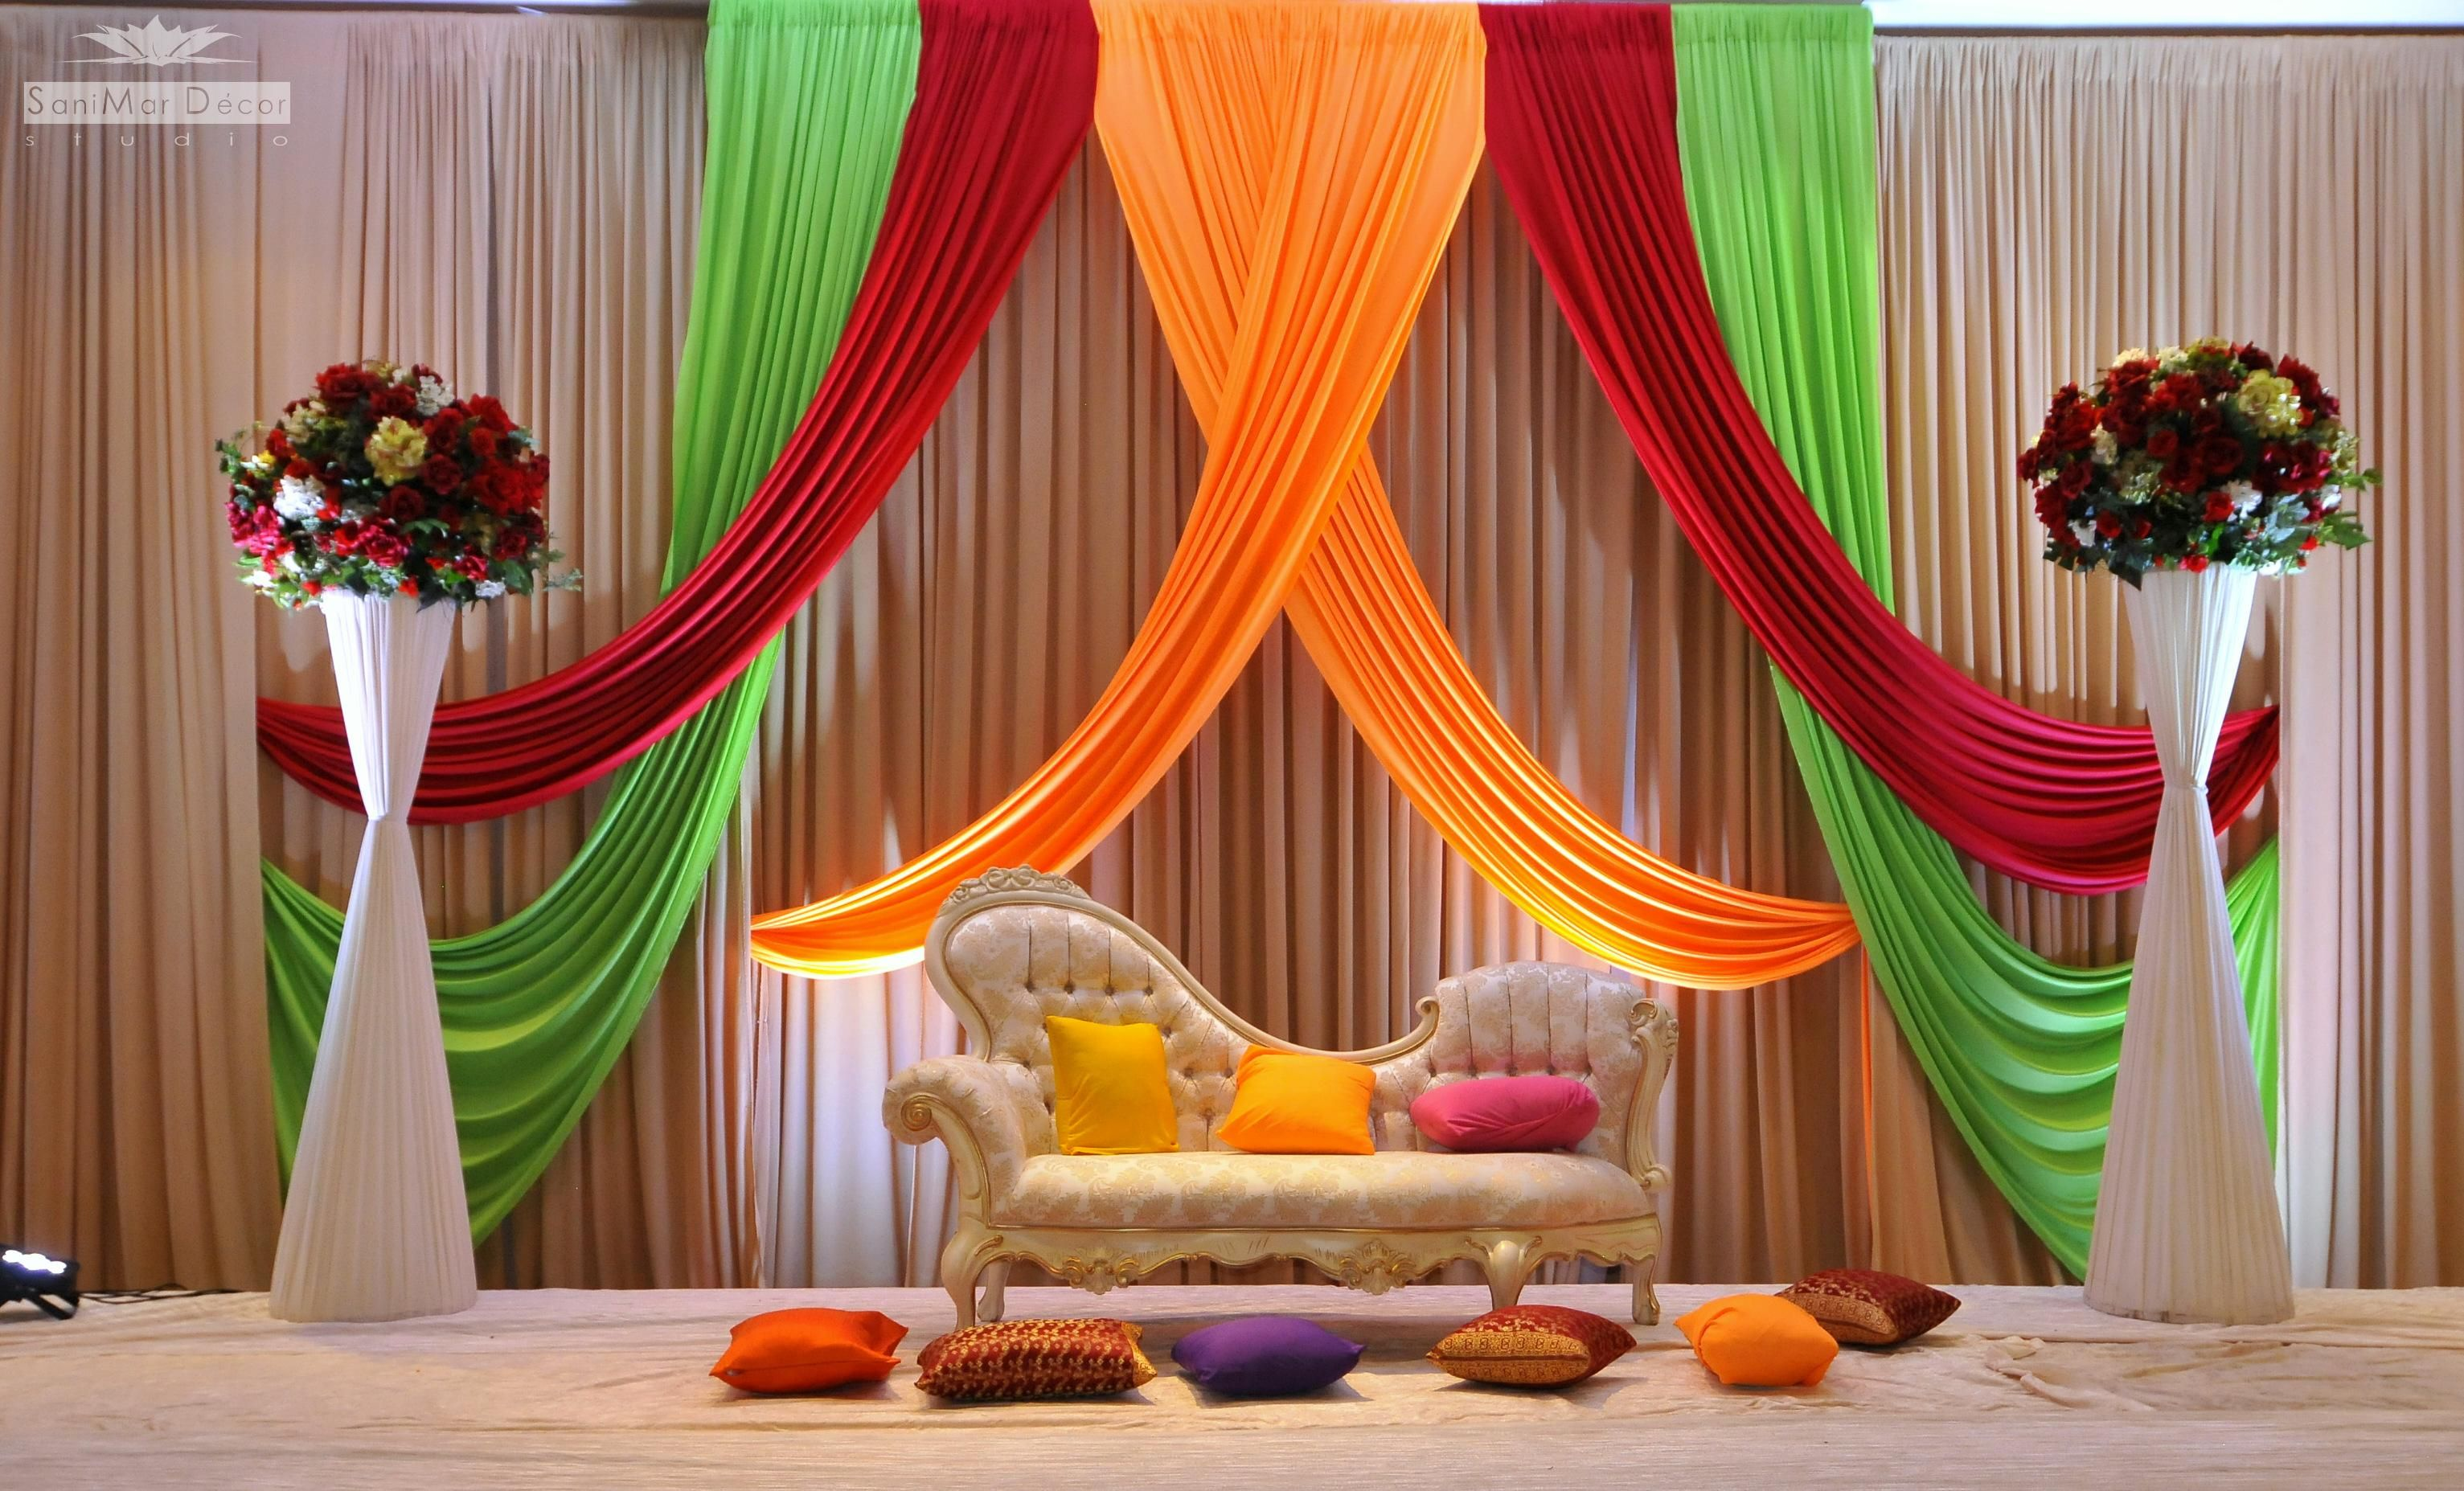 Wedding stage decoration wedding decorations natural for Wedding decoration images